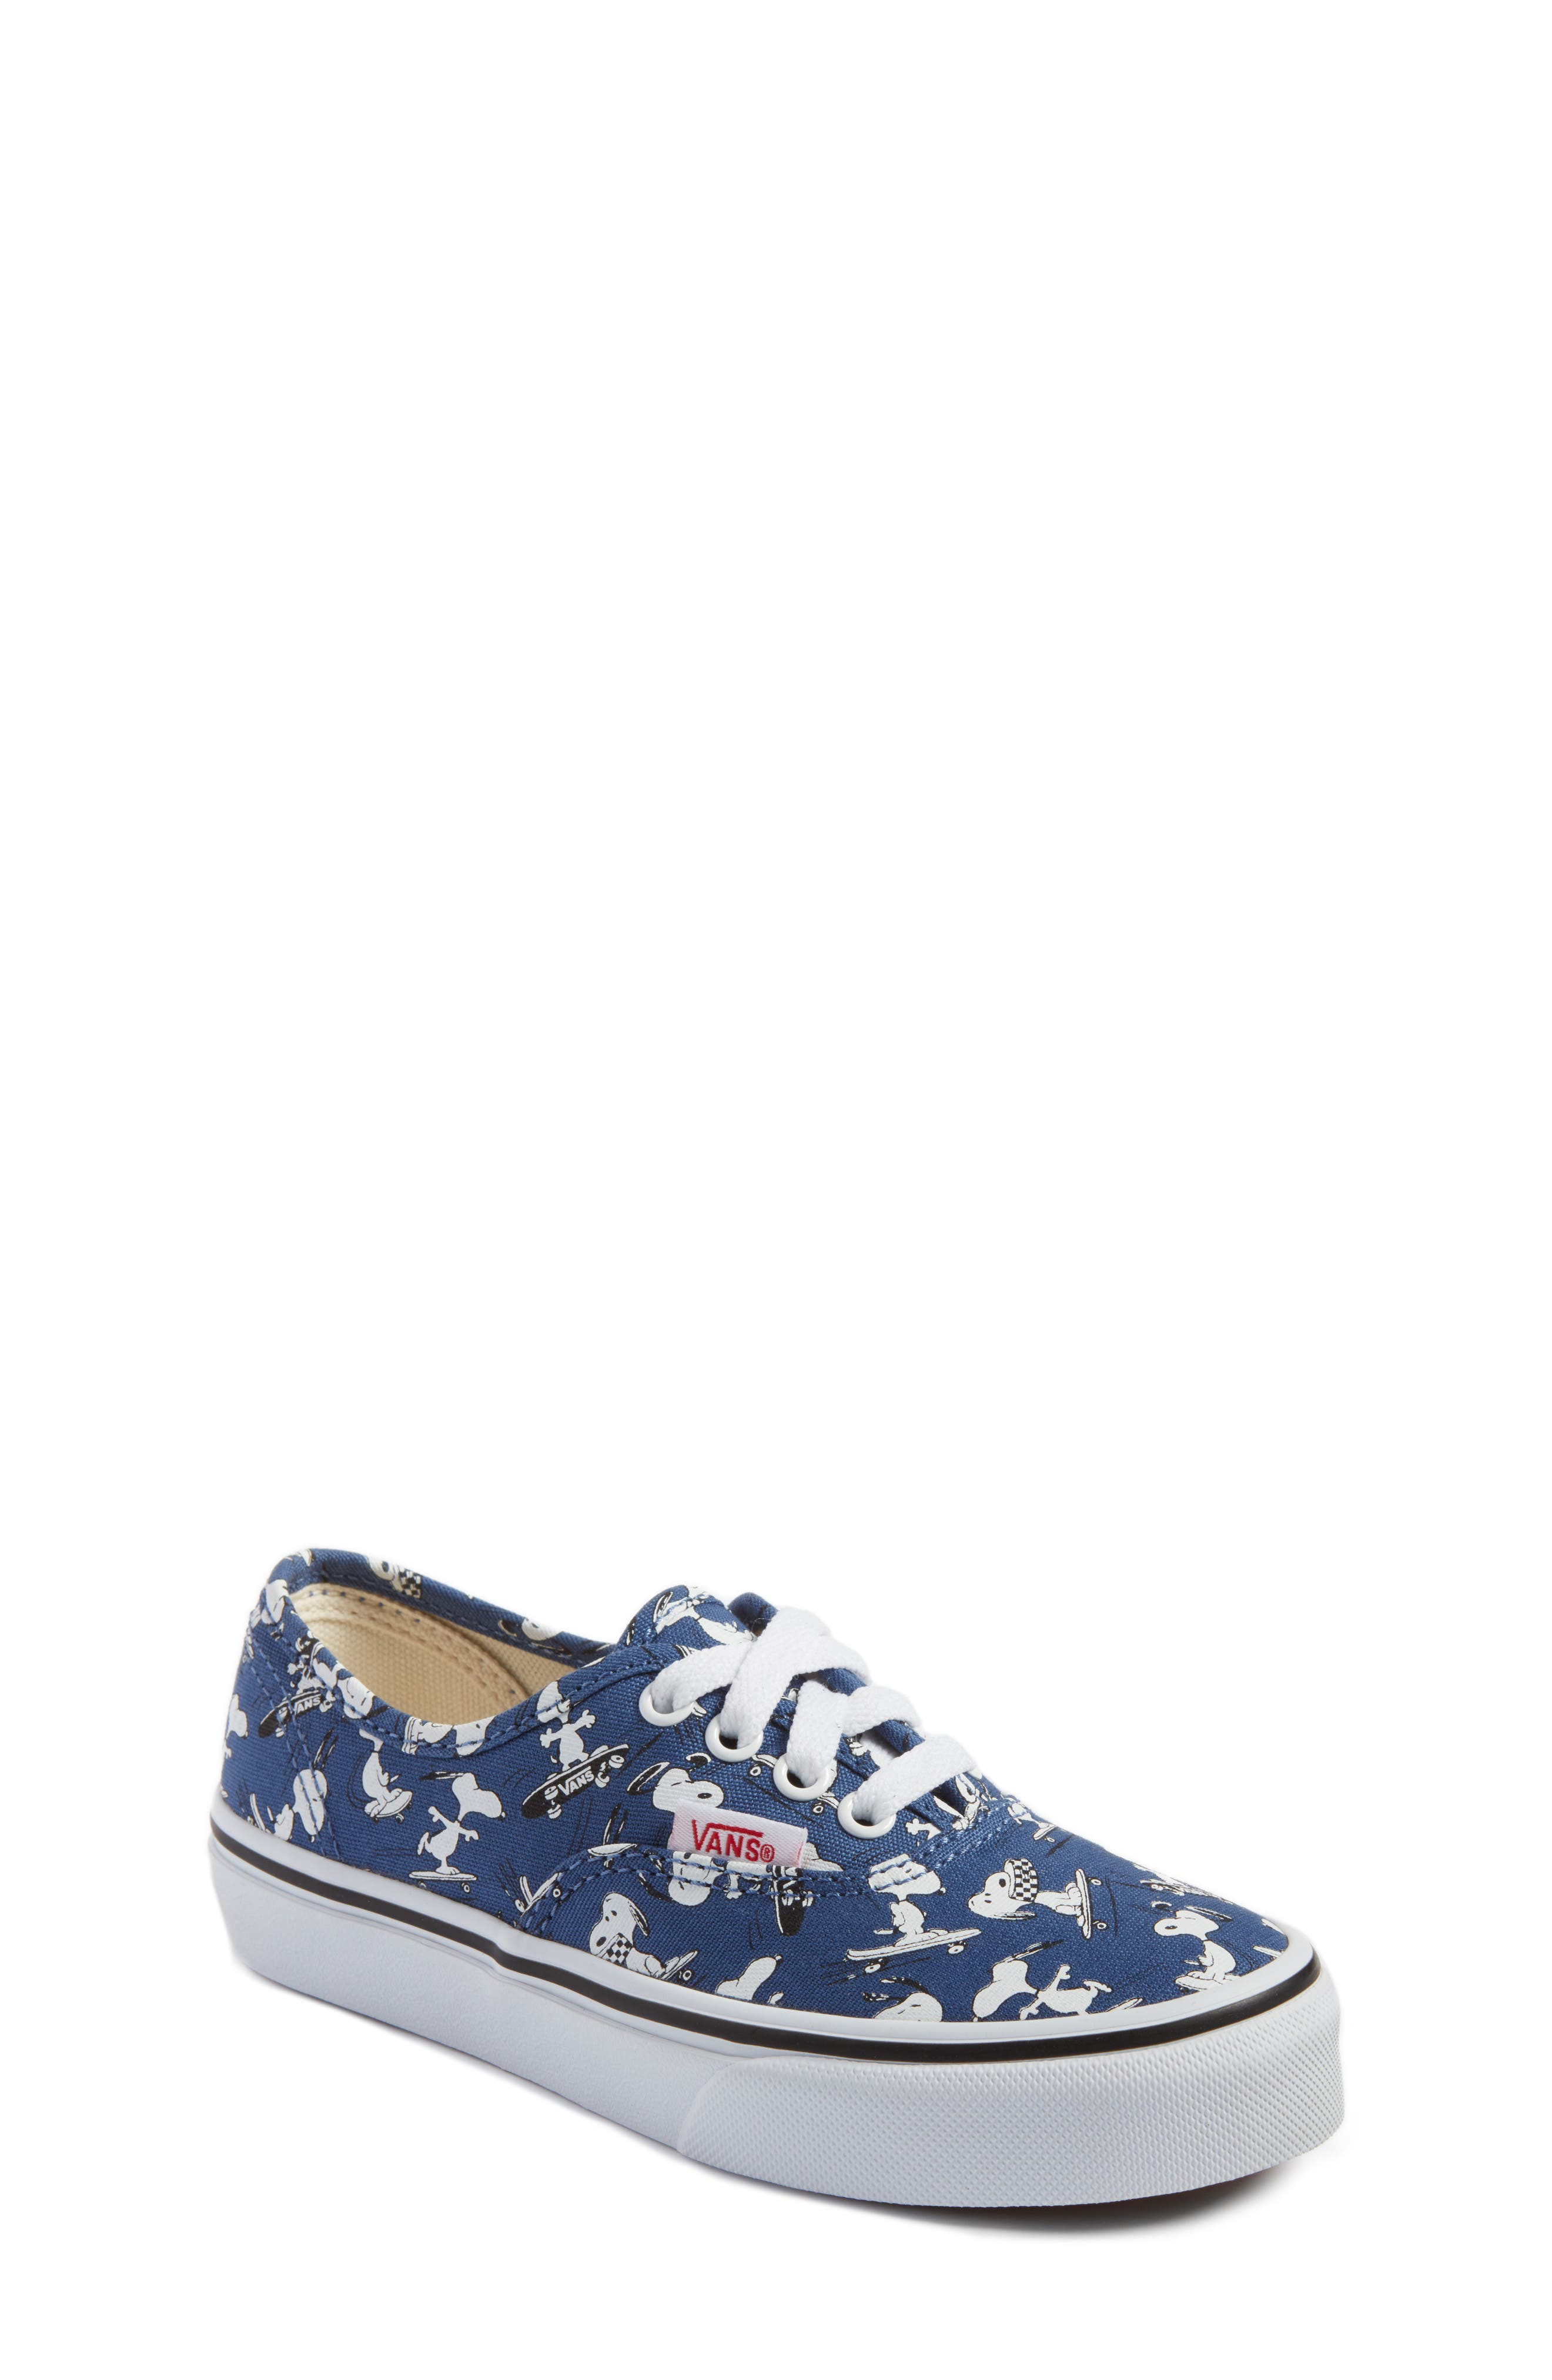 x Peanuts Authentic Sneaker,                             Main thumbnail 1, color,                             400